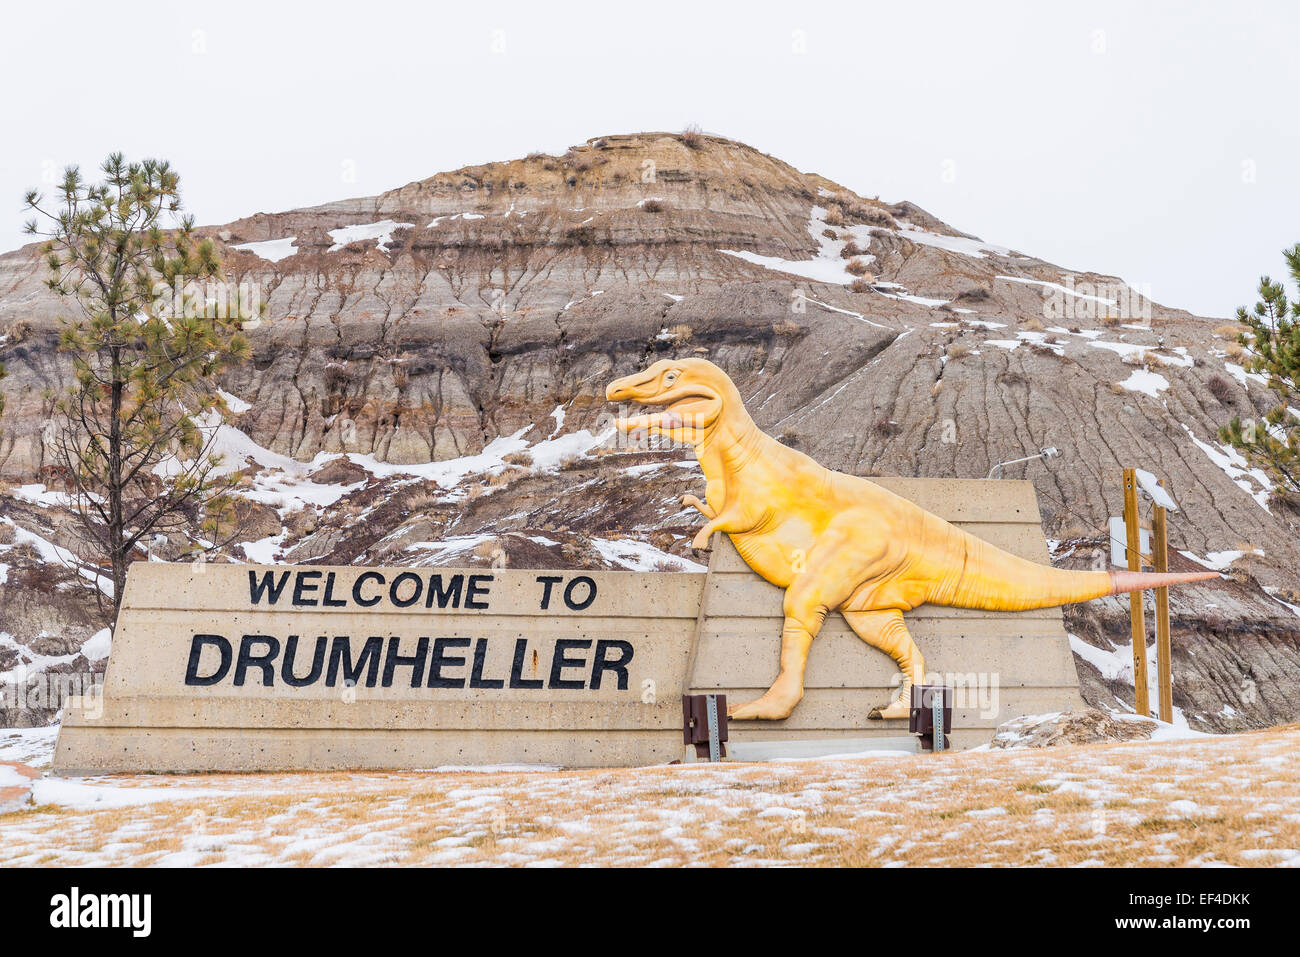 Welcome to Drumheller sign,  Drumheller, Alberta, Canada - Stock Image